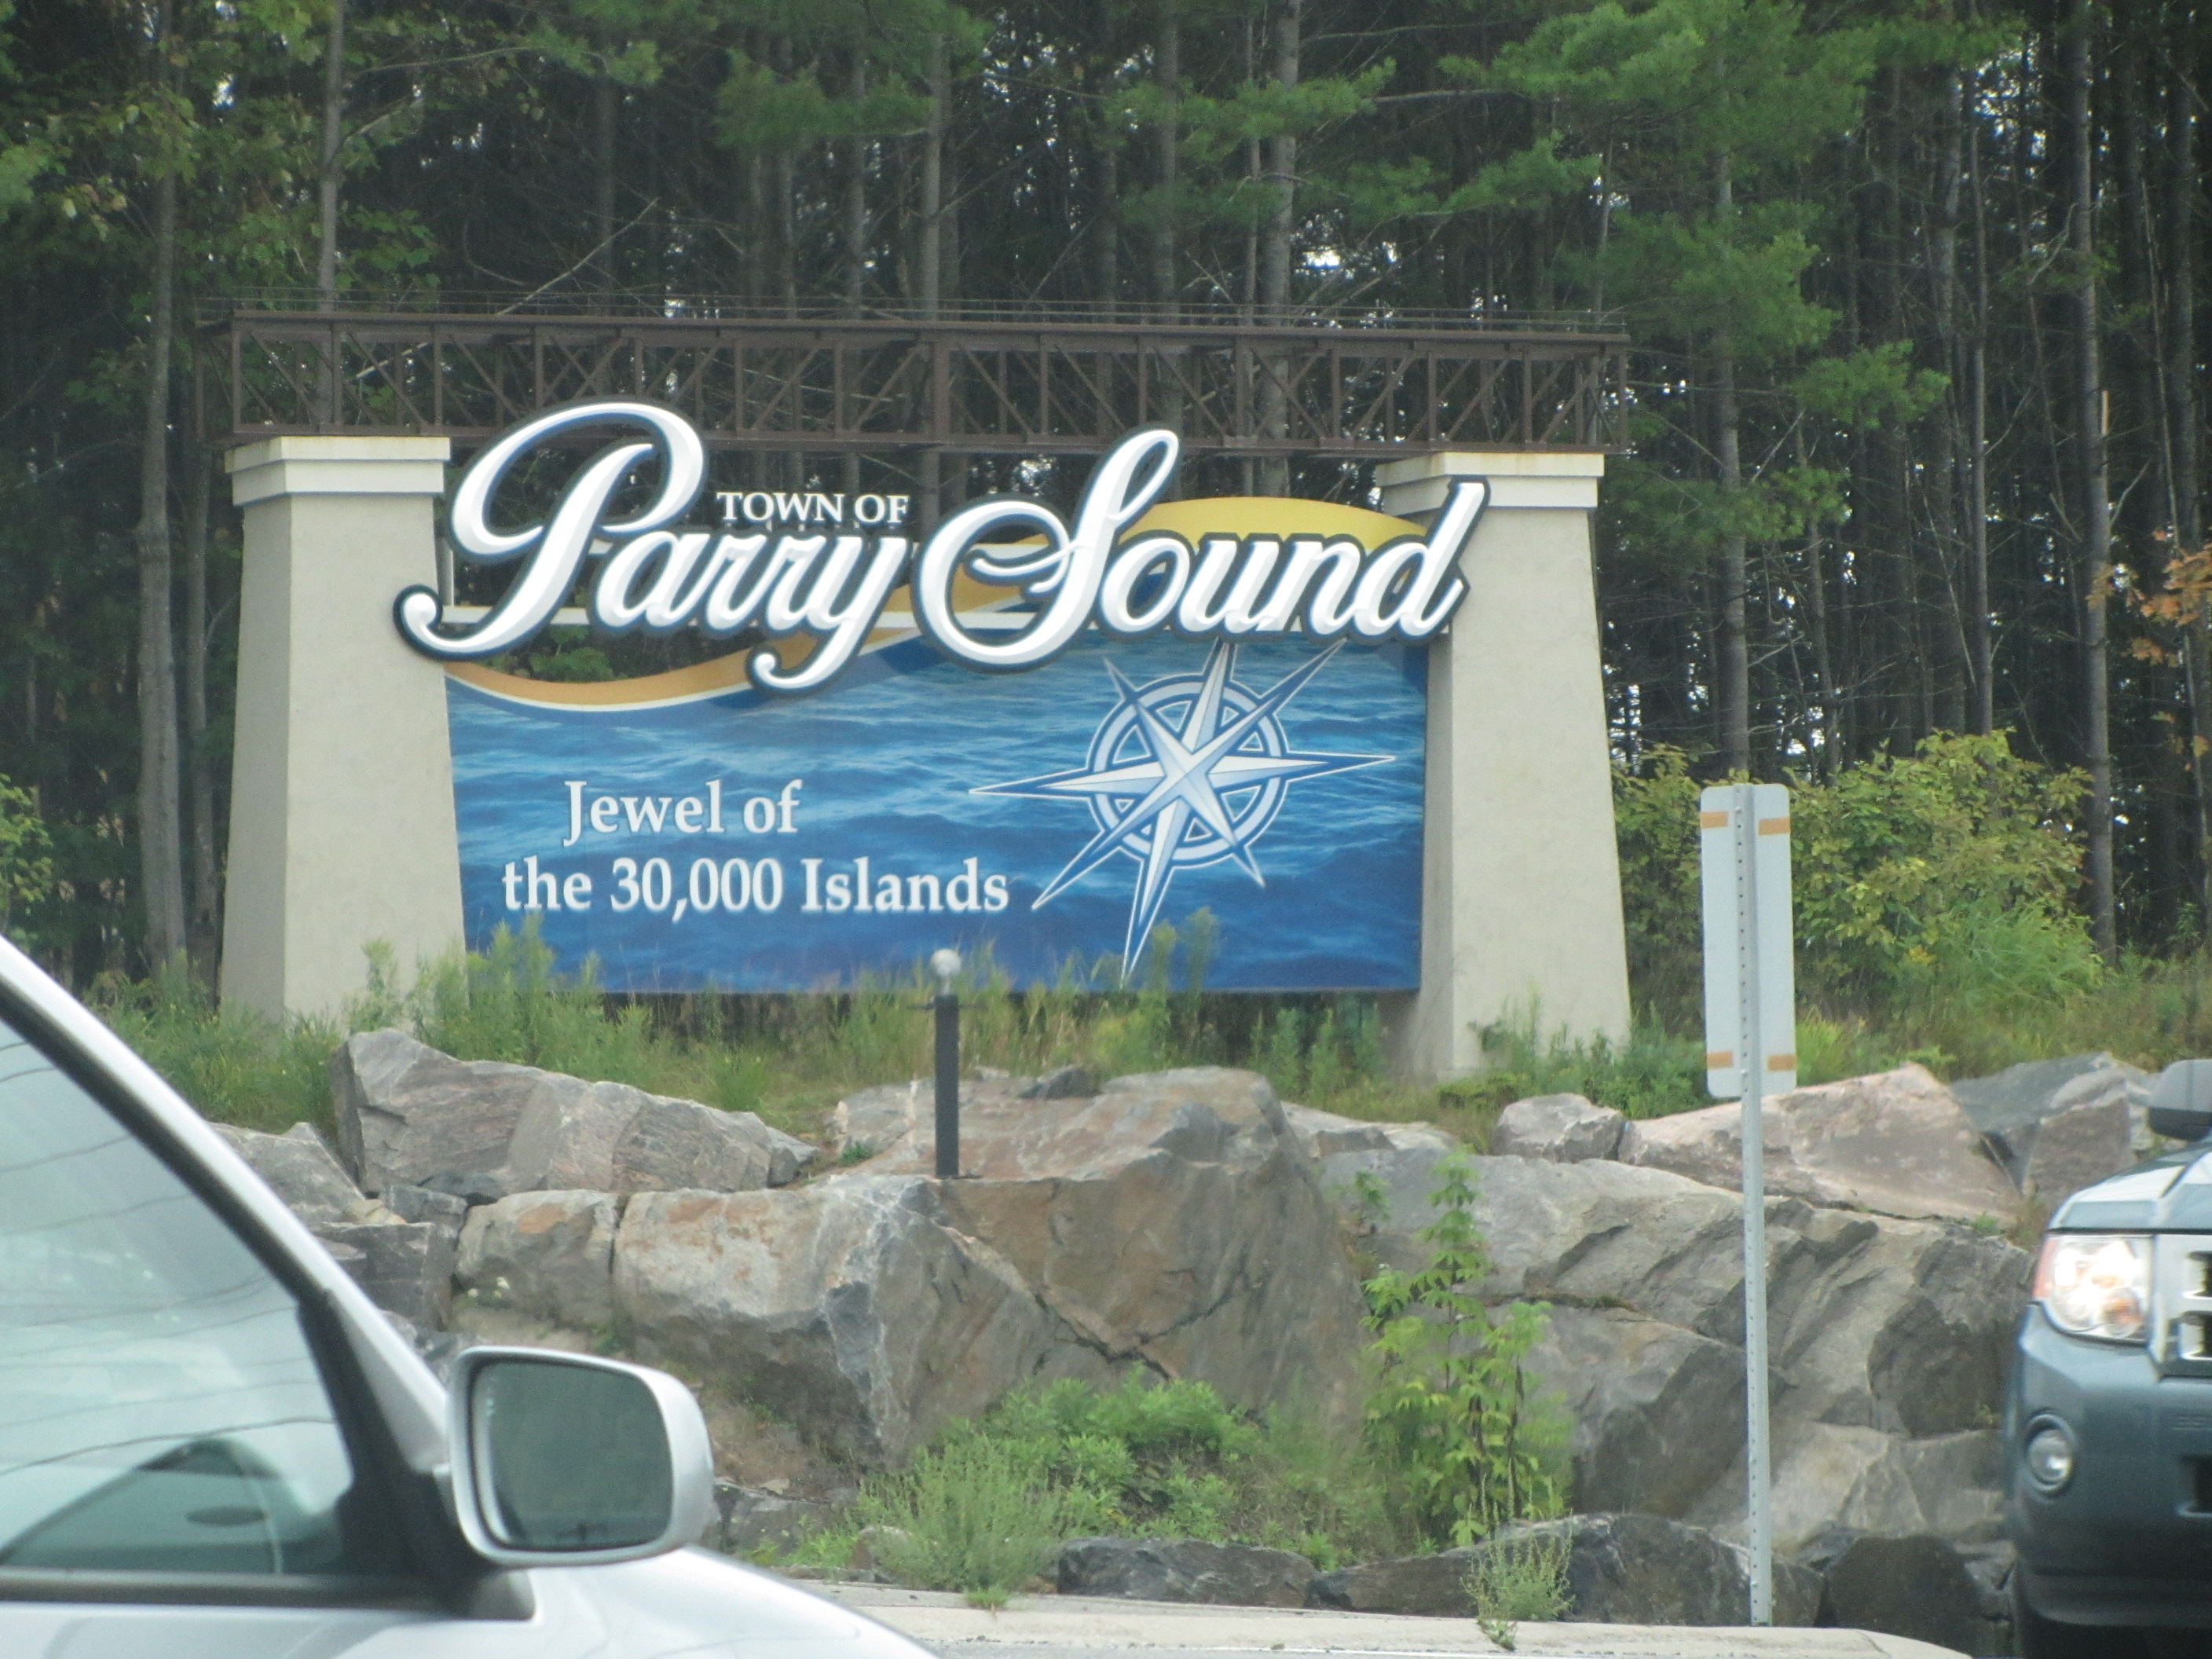 Parry Sound (ON) Canada  city photos gallery : ... Blue Jays, Yankees und Spikey. Canada, eh » 13 – Hi, Parry Sound